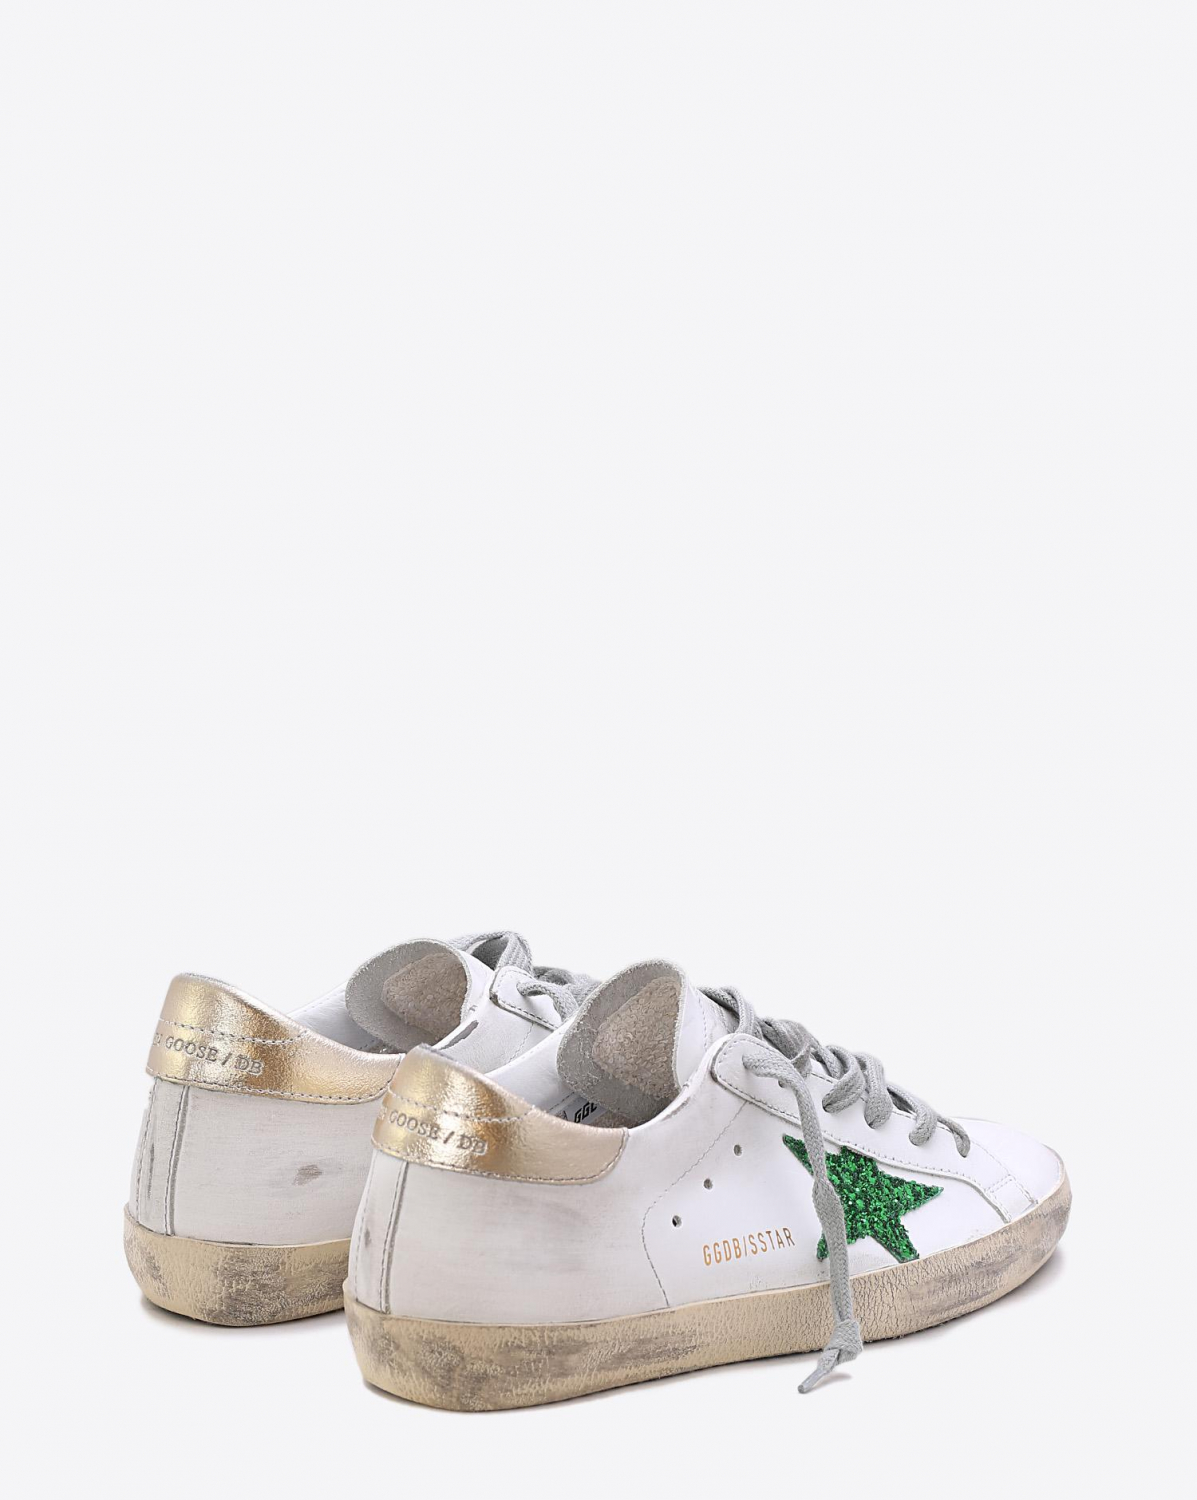 Golden Goose Woman Collection Sneakers Superstar White Leather Green Glitter